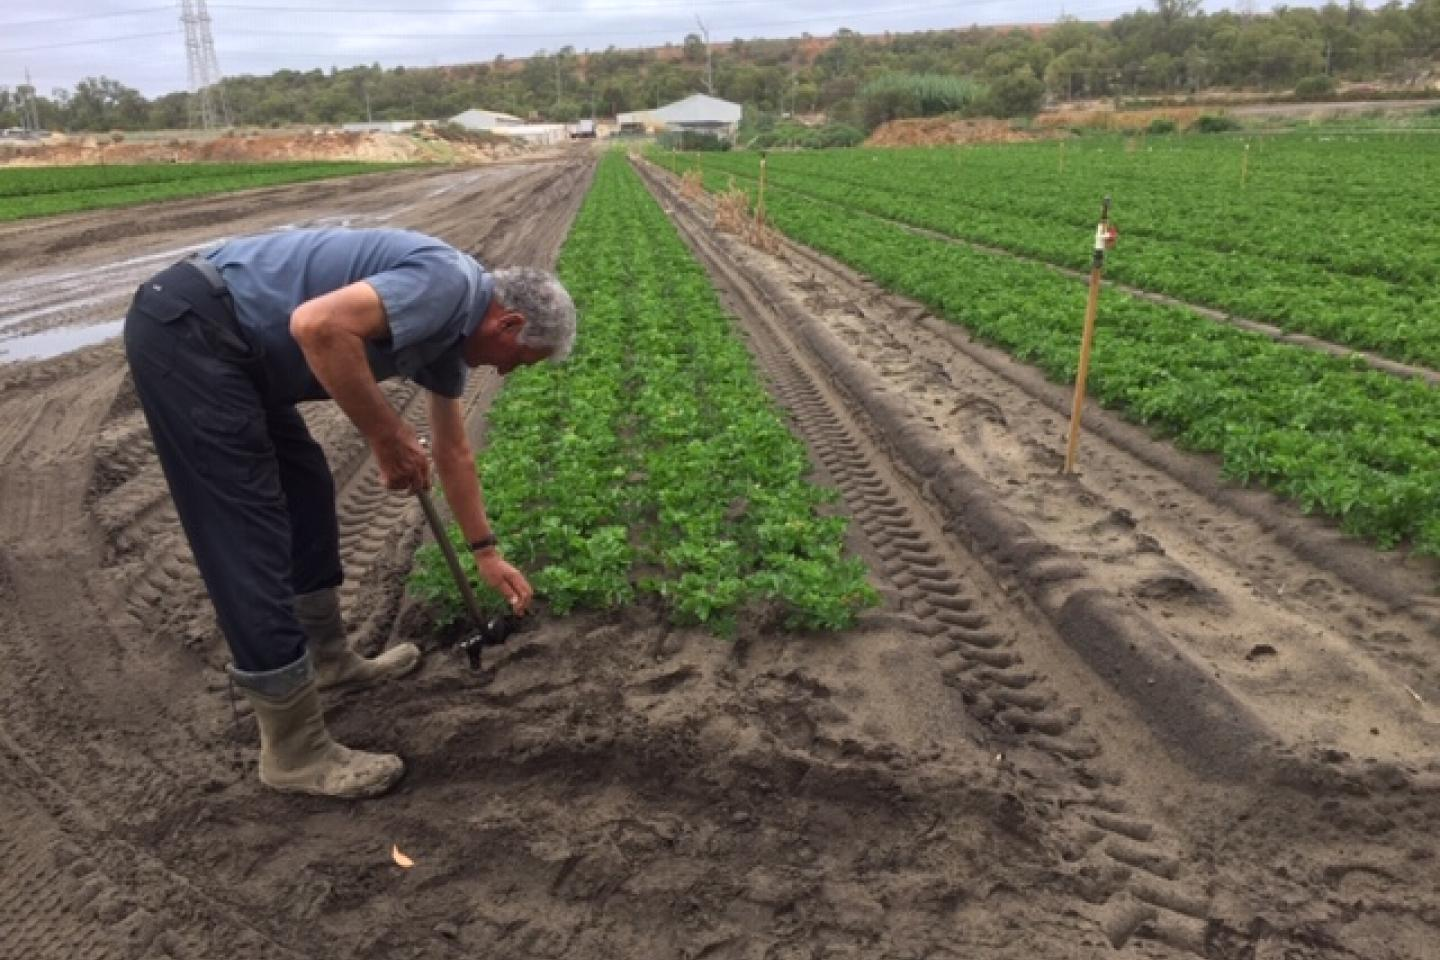 South Fremantle market gardener Lori Sumich is totally convinced deep tillage is a required management practice growing vegetables.